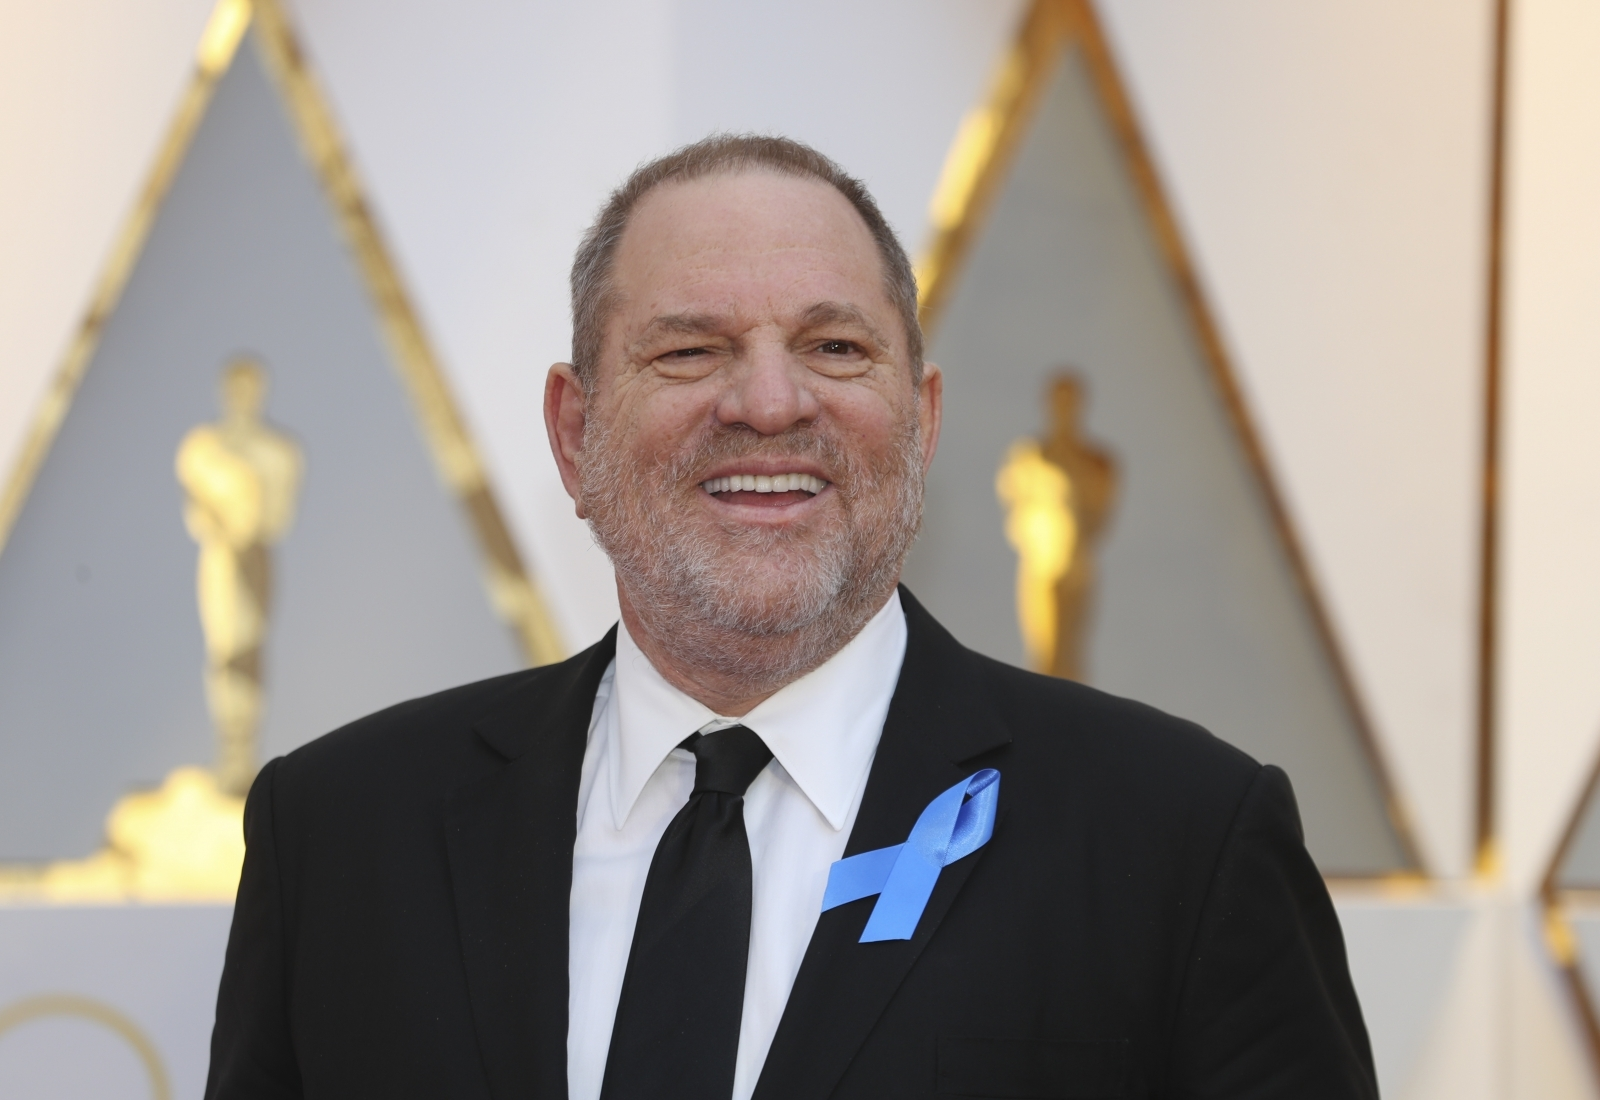 Hollywood mogul and film producer Harvey Weinstein fired after sexual harassment claims